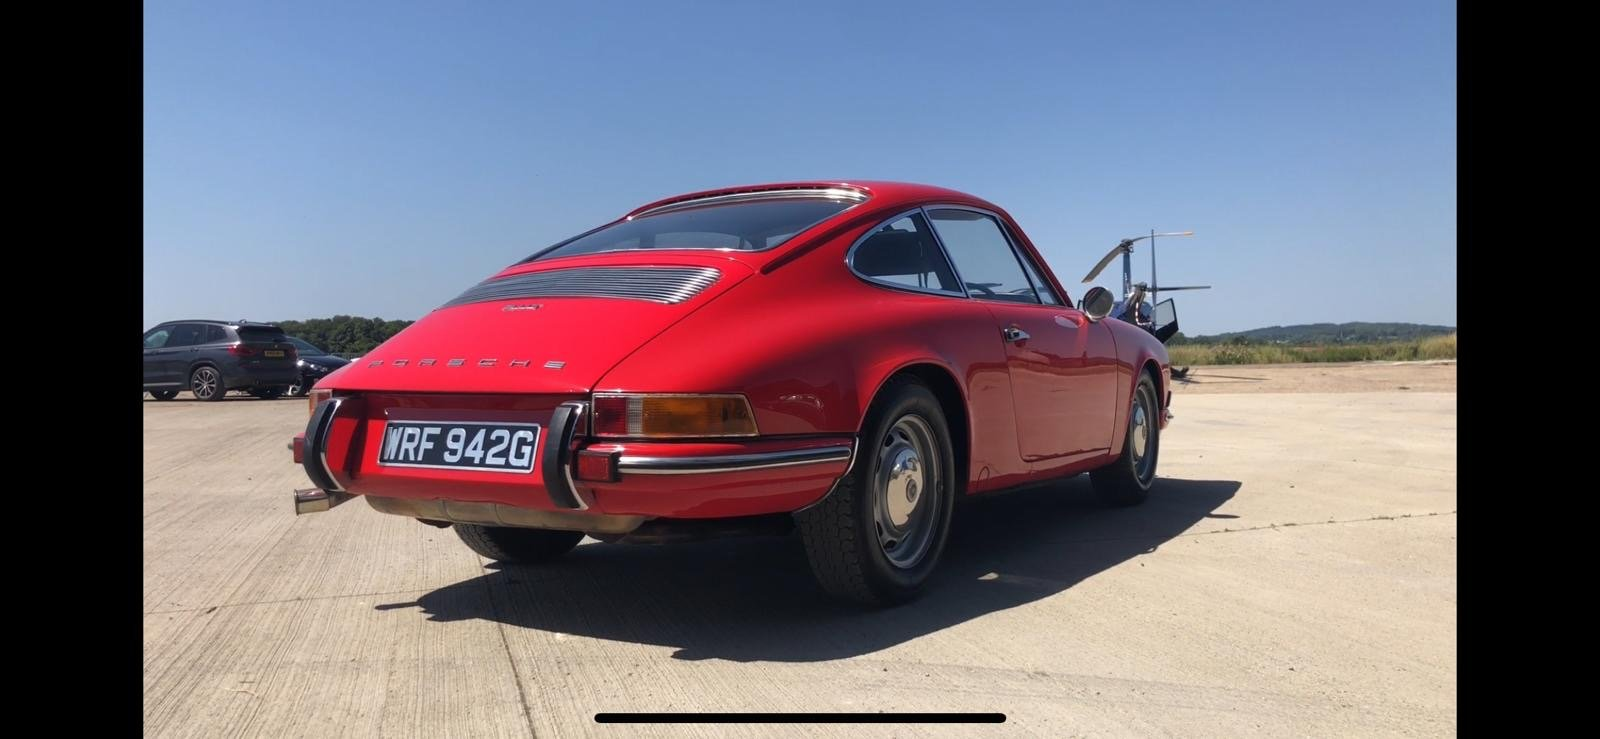 Porsche 911T RHD 1969 Sportamatic Coupe Red For Sale (picture 4 of 9)